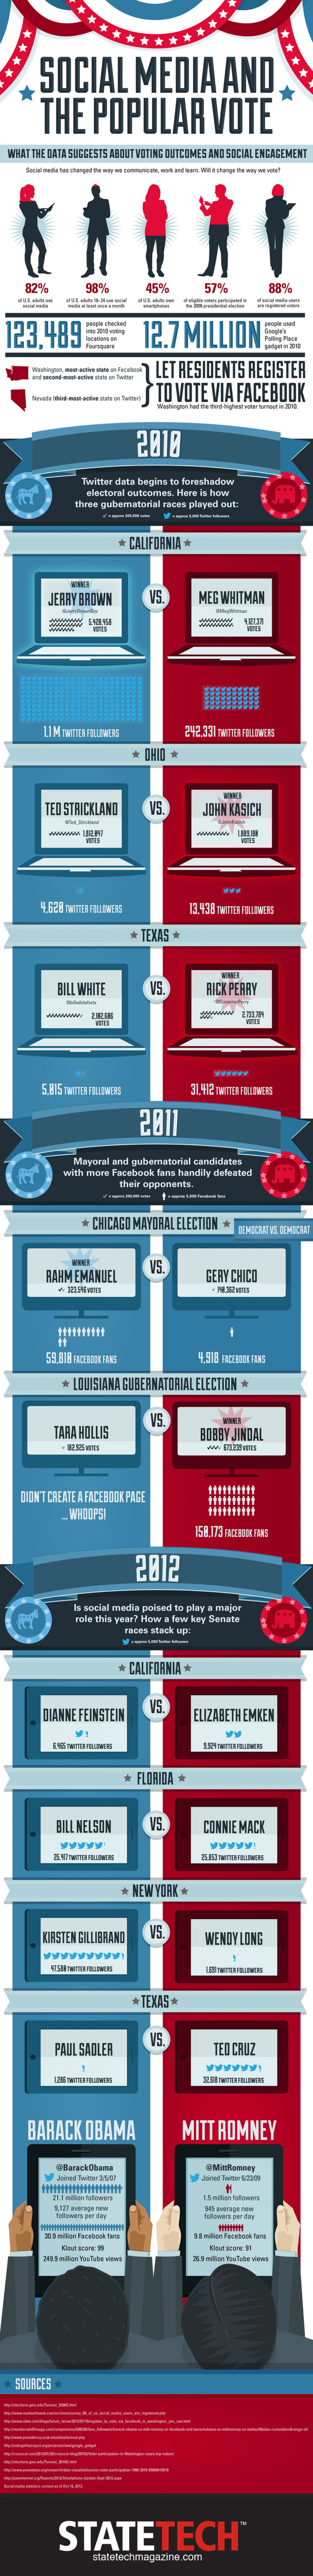 Can Social Media Predict Election Outcomes? Infographic